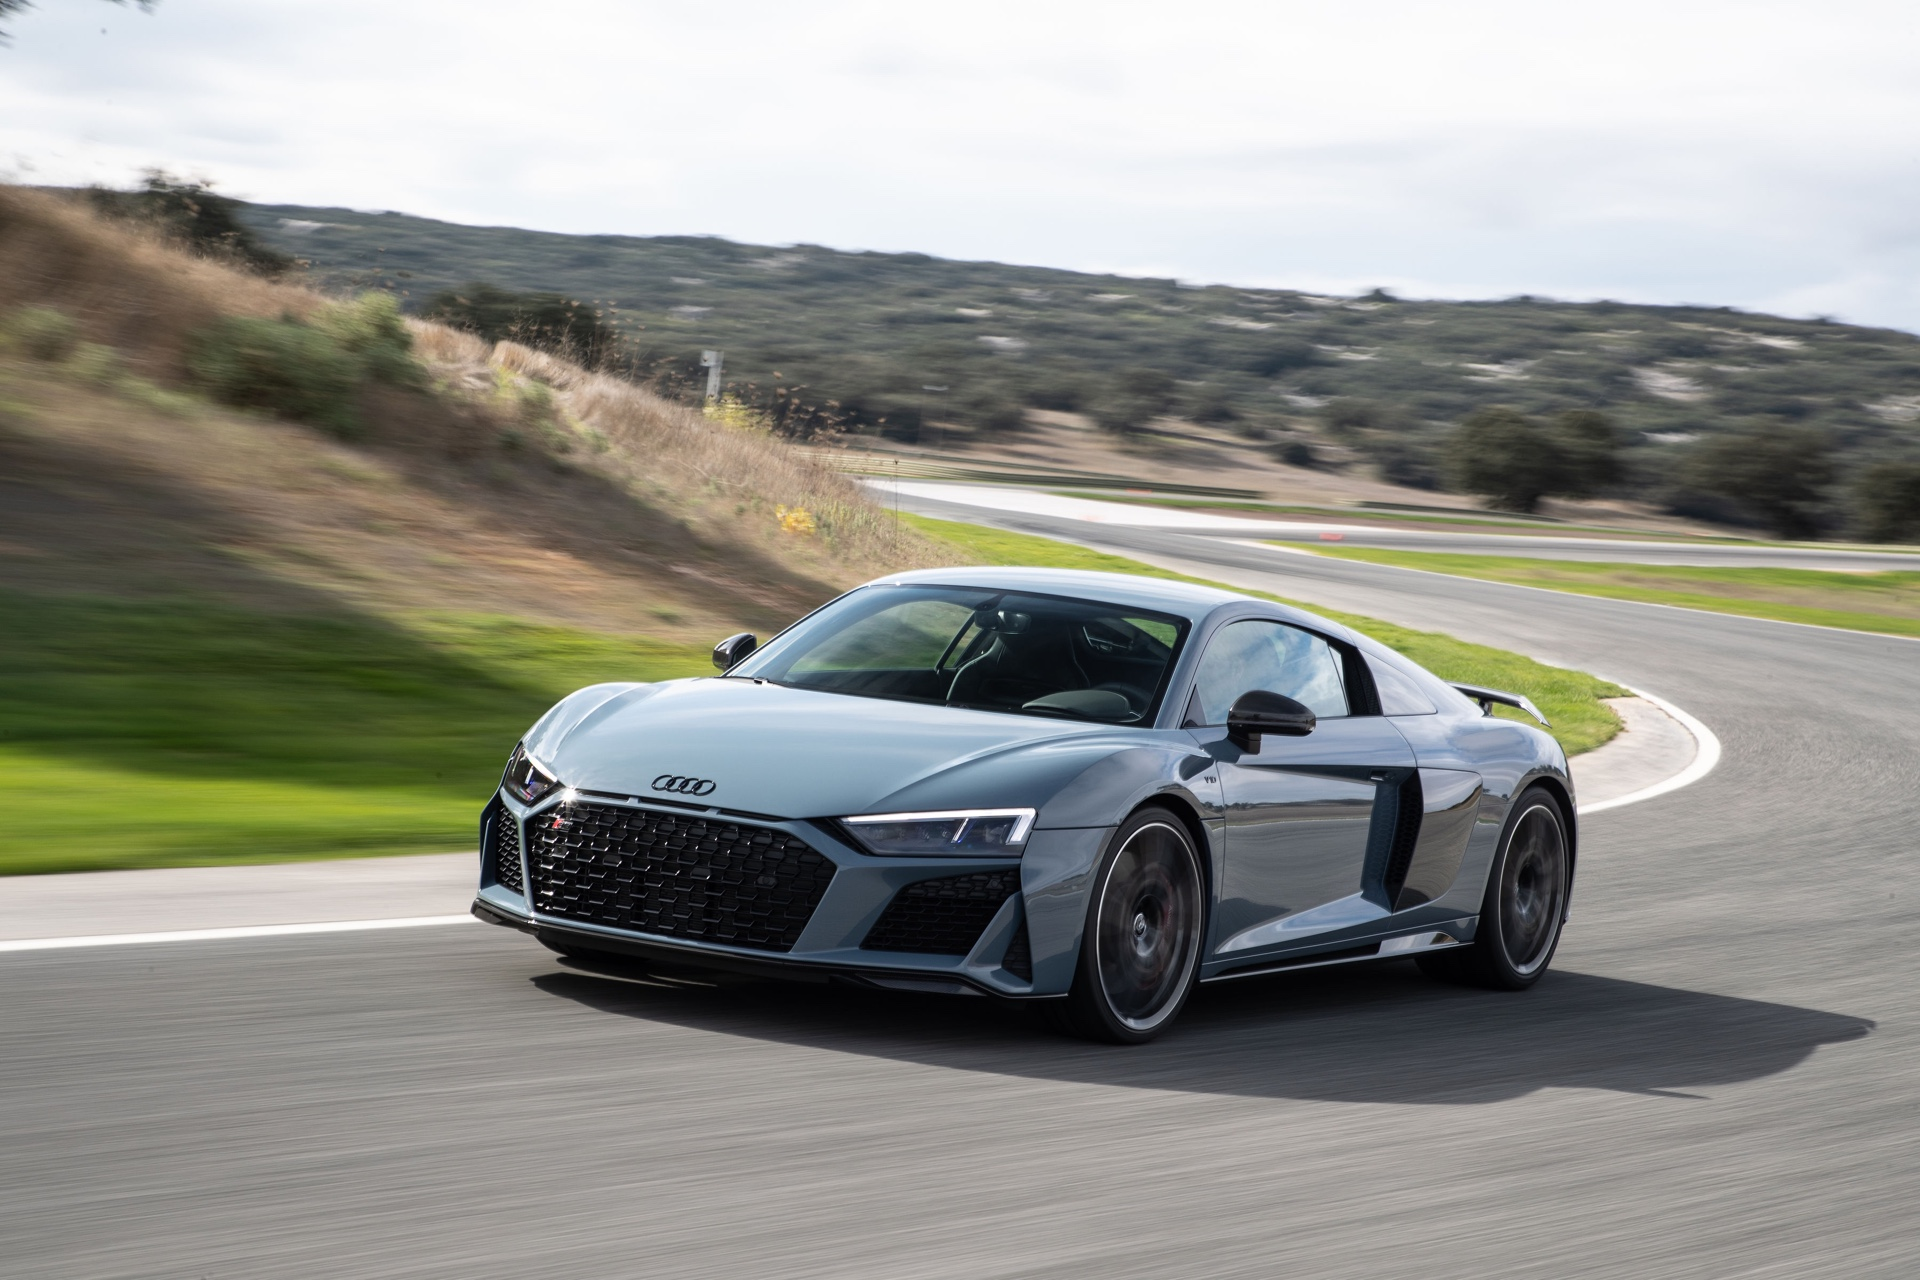 2019 Audi R8 Performance Review